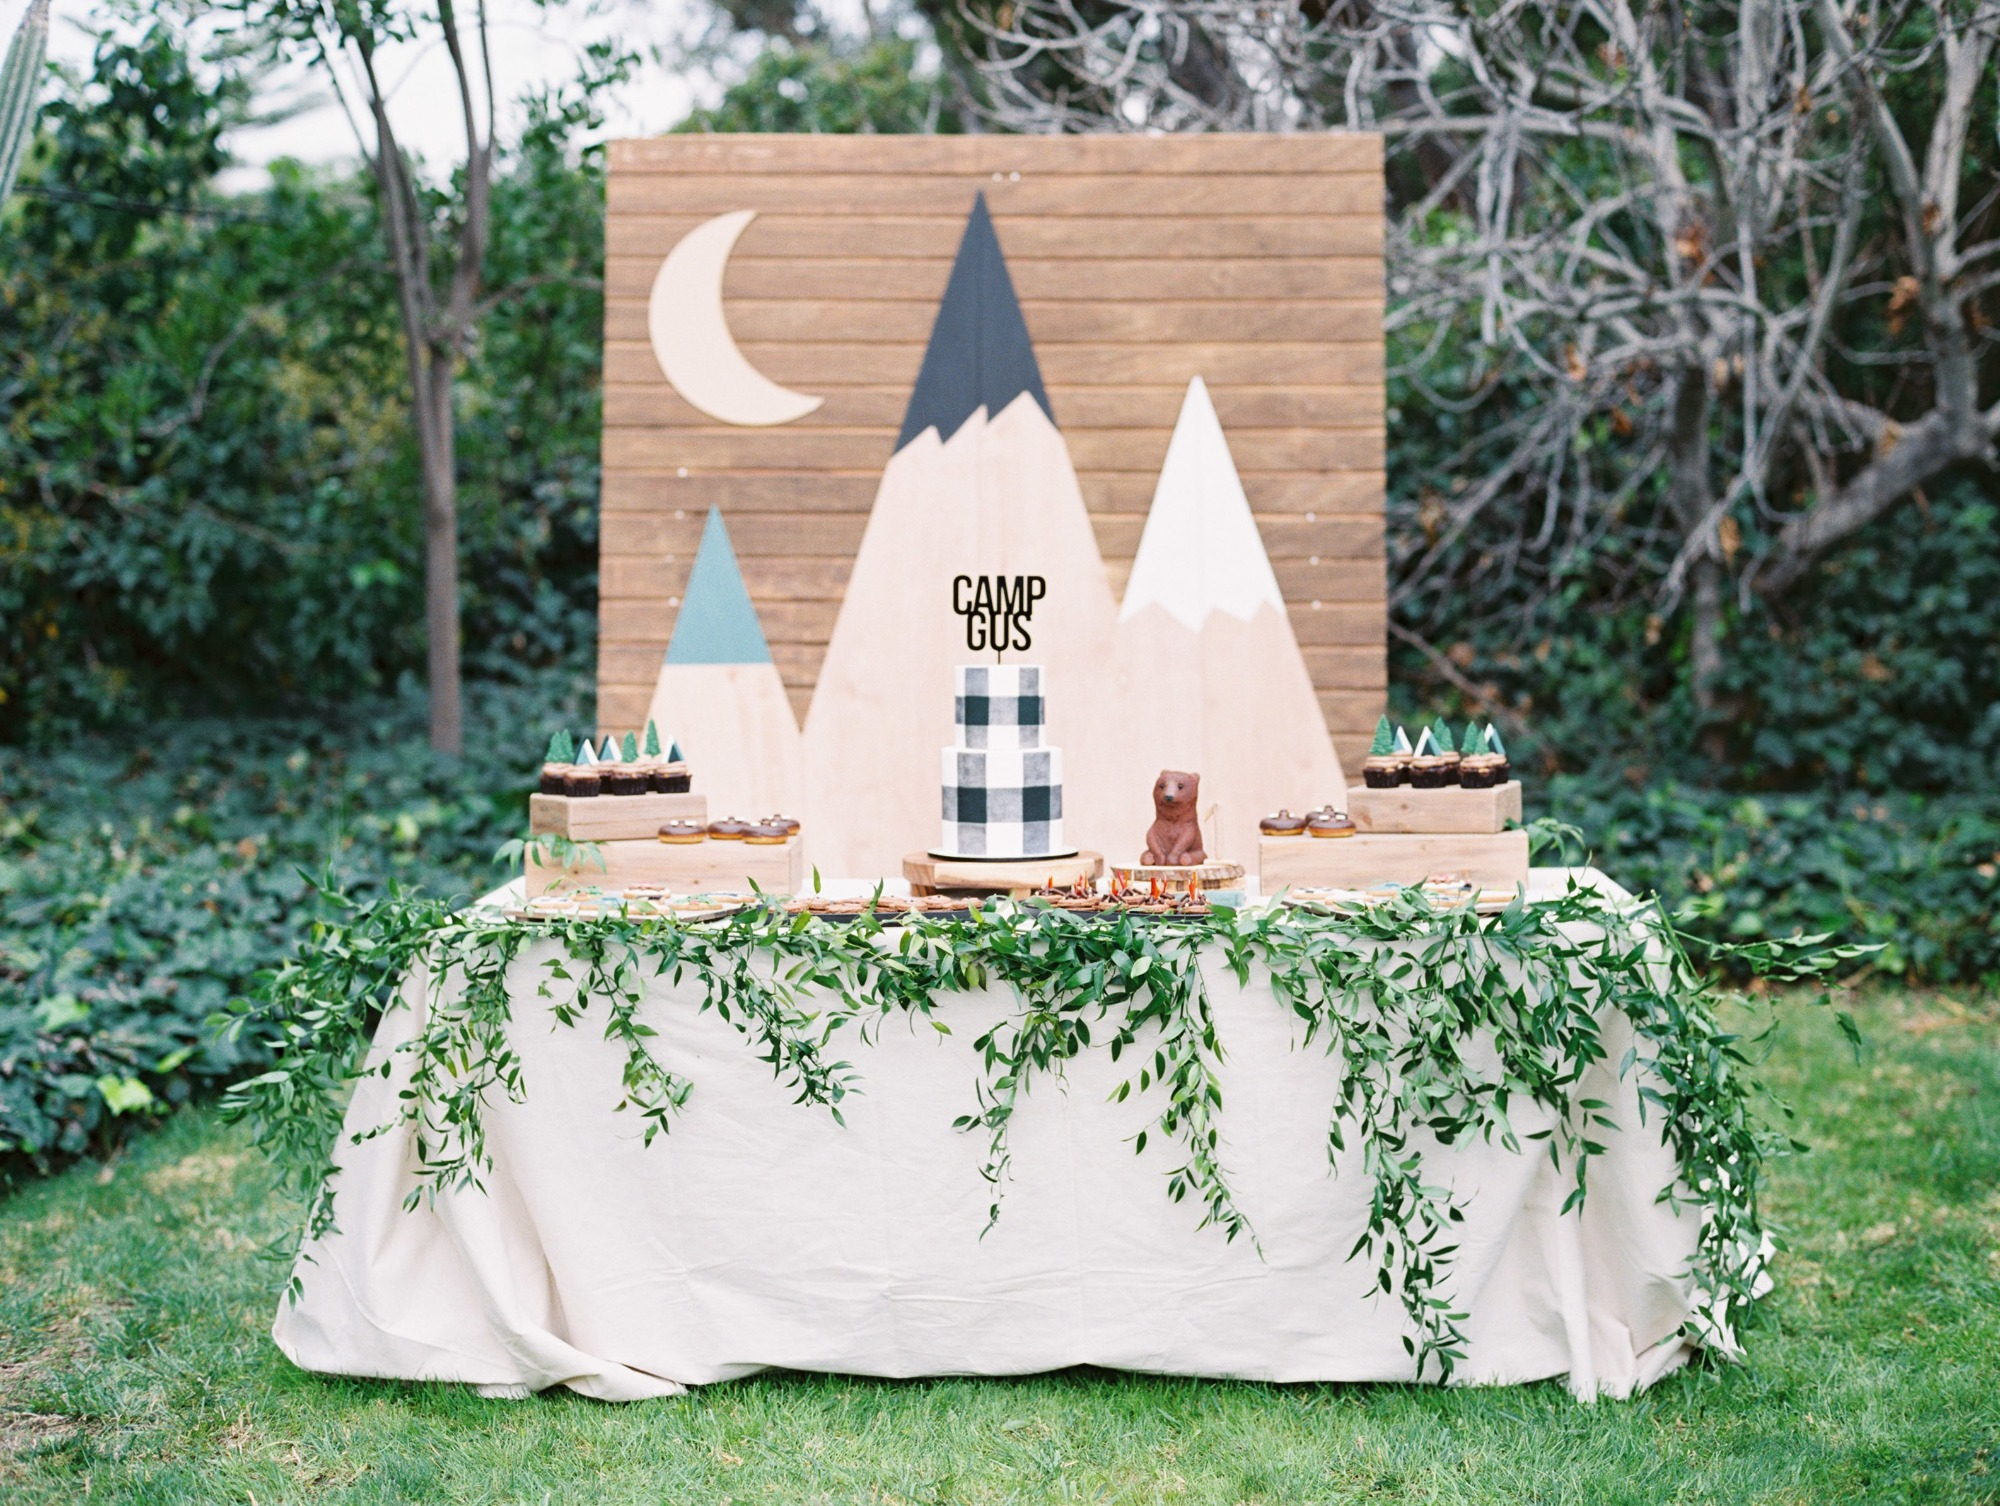 Birthday Dessert Table from Classic Camping Birthday Party Styled by Deets & Things | Black Twine